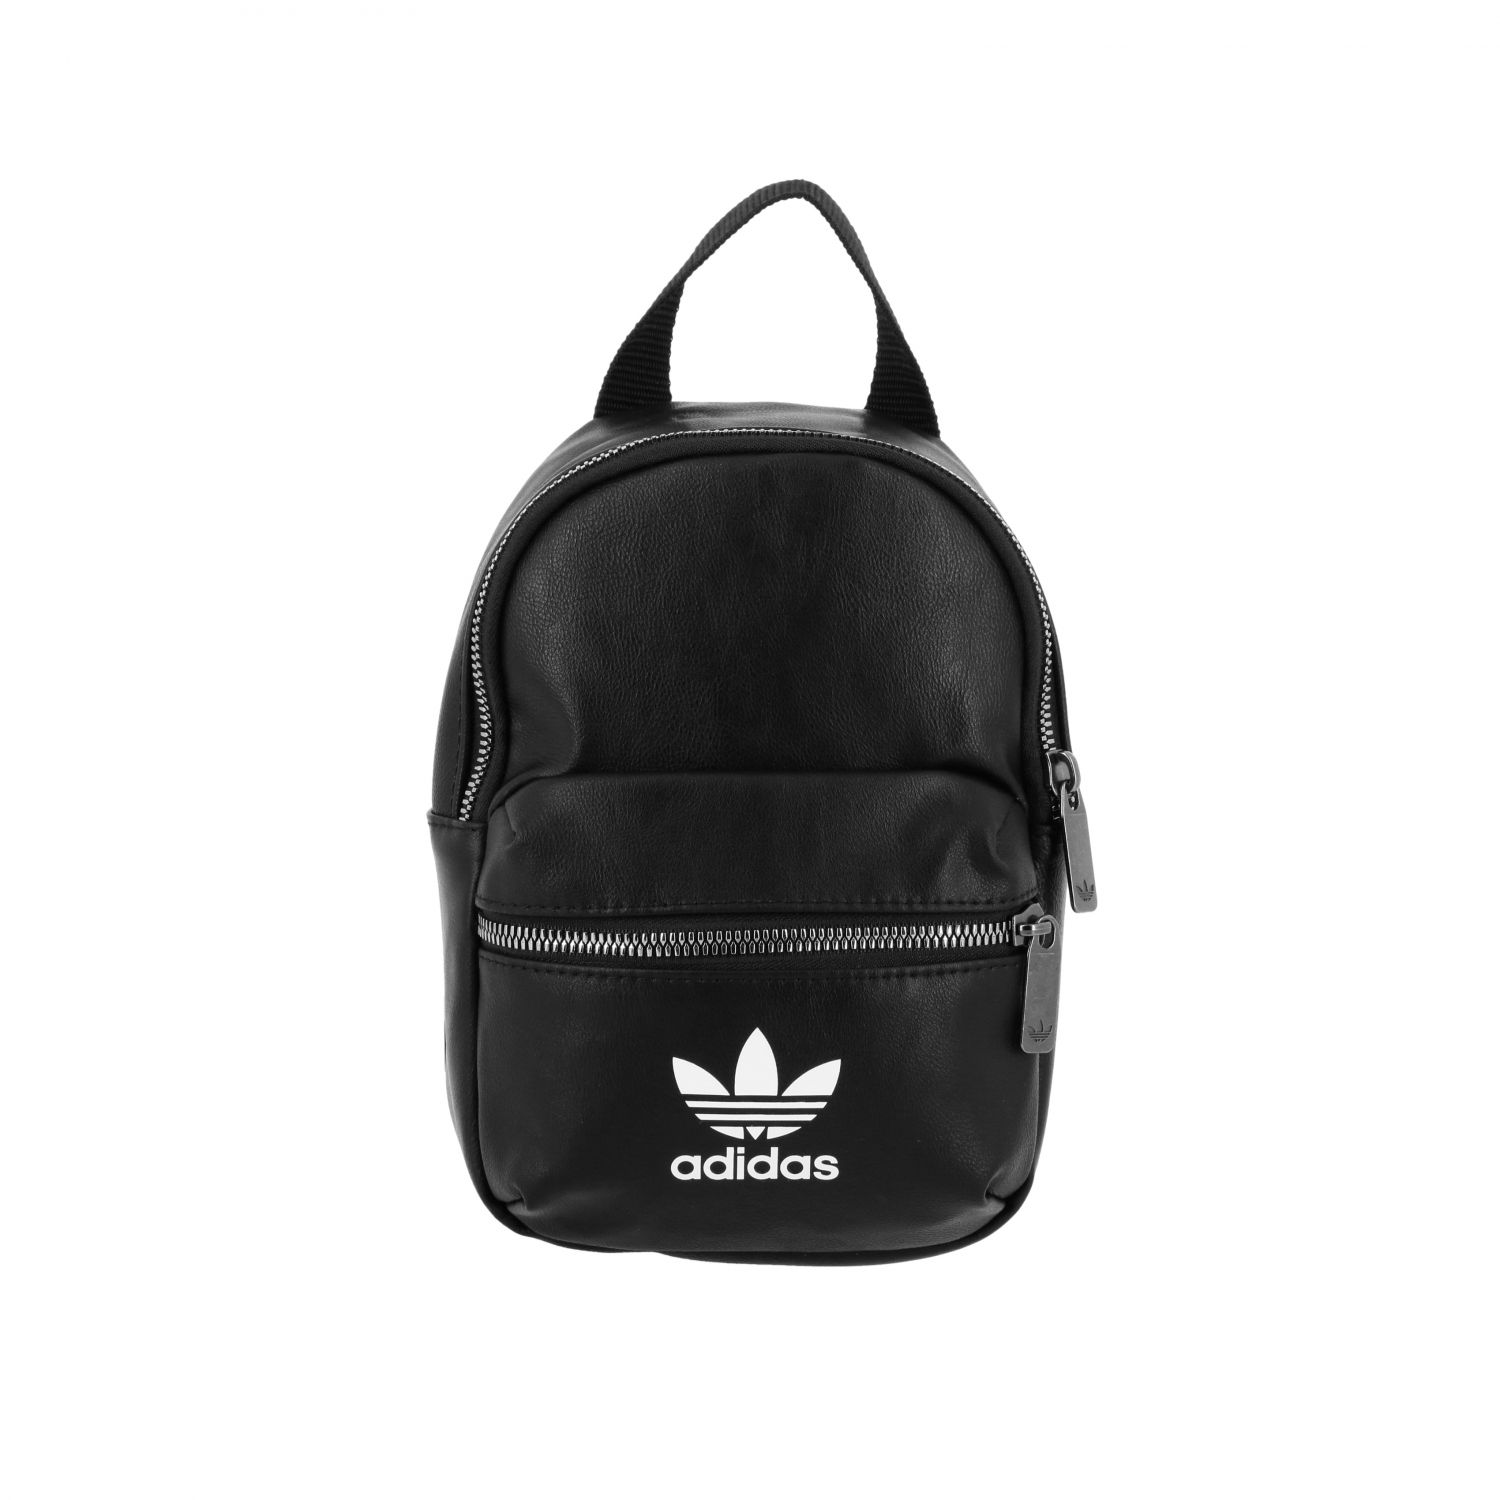 Clutch Adidas Originals: Clutch kids Adidas Originals black 1